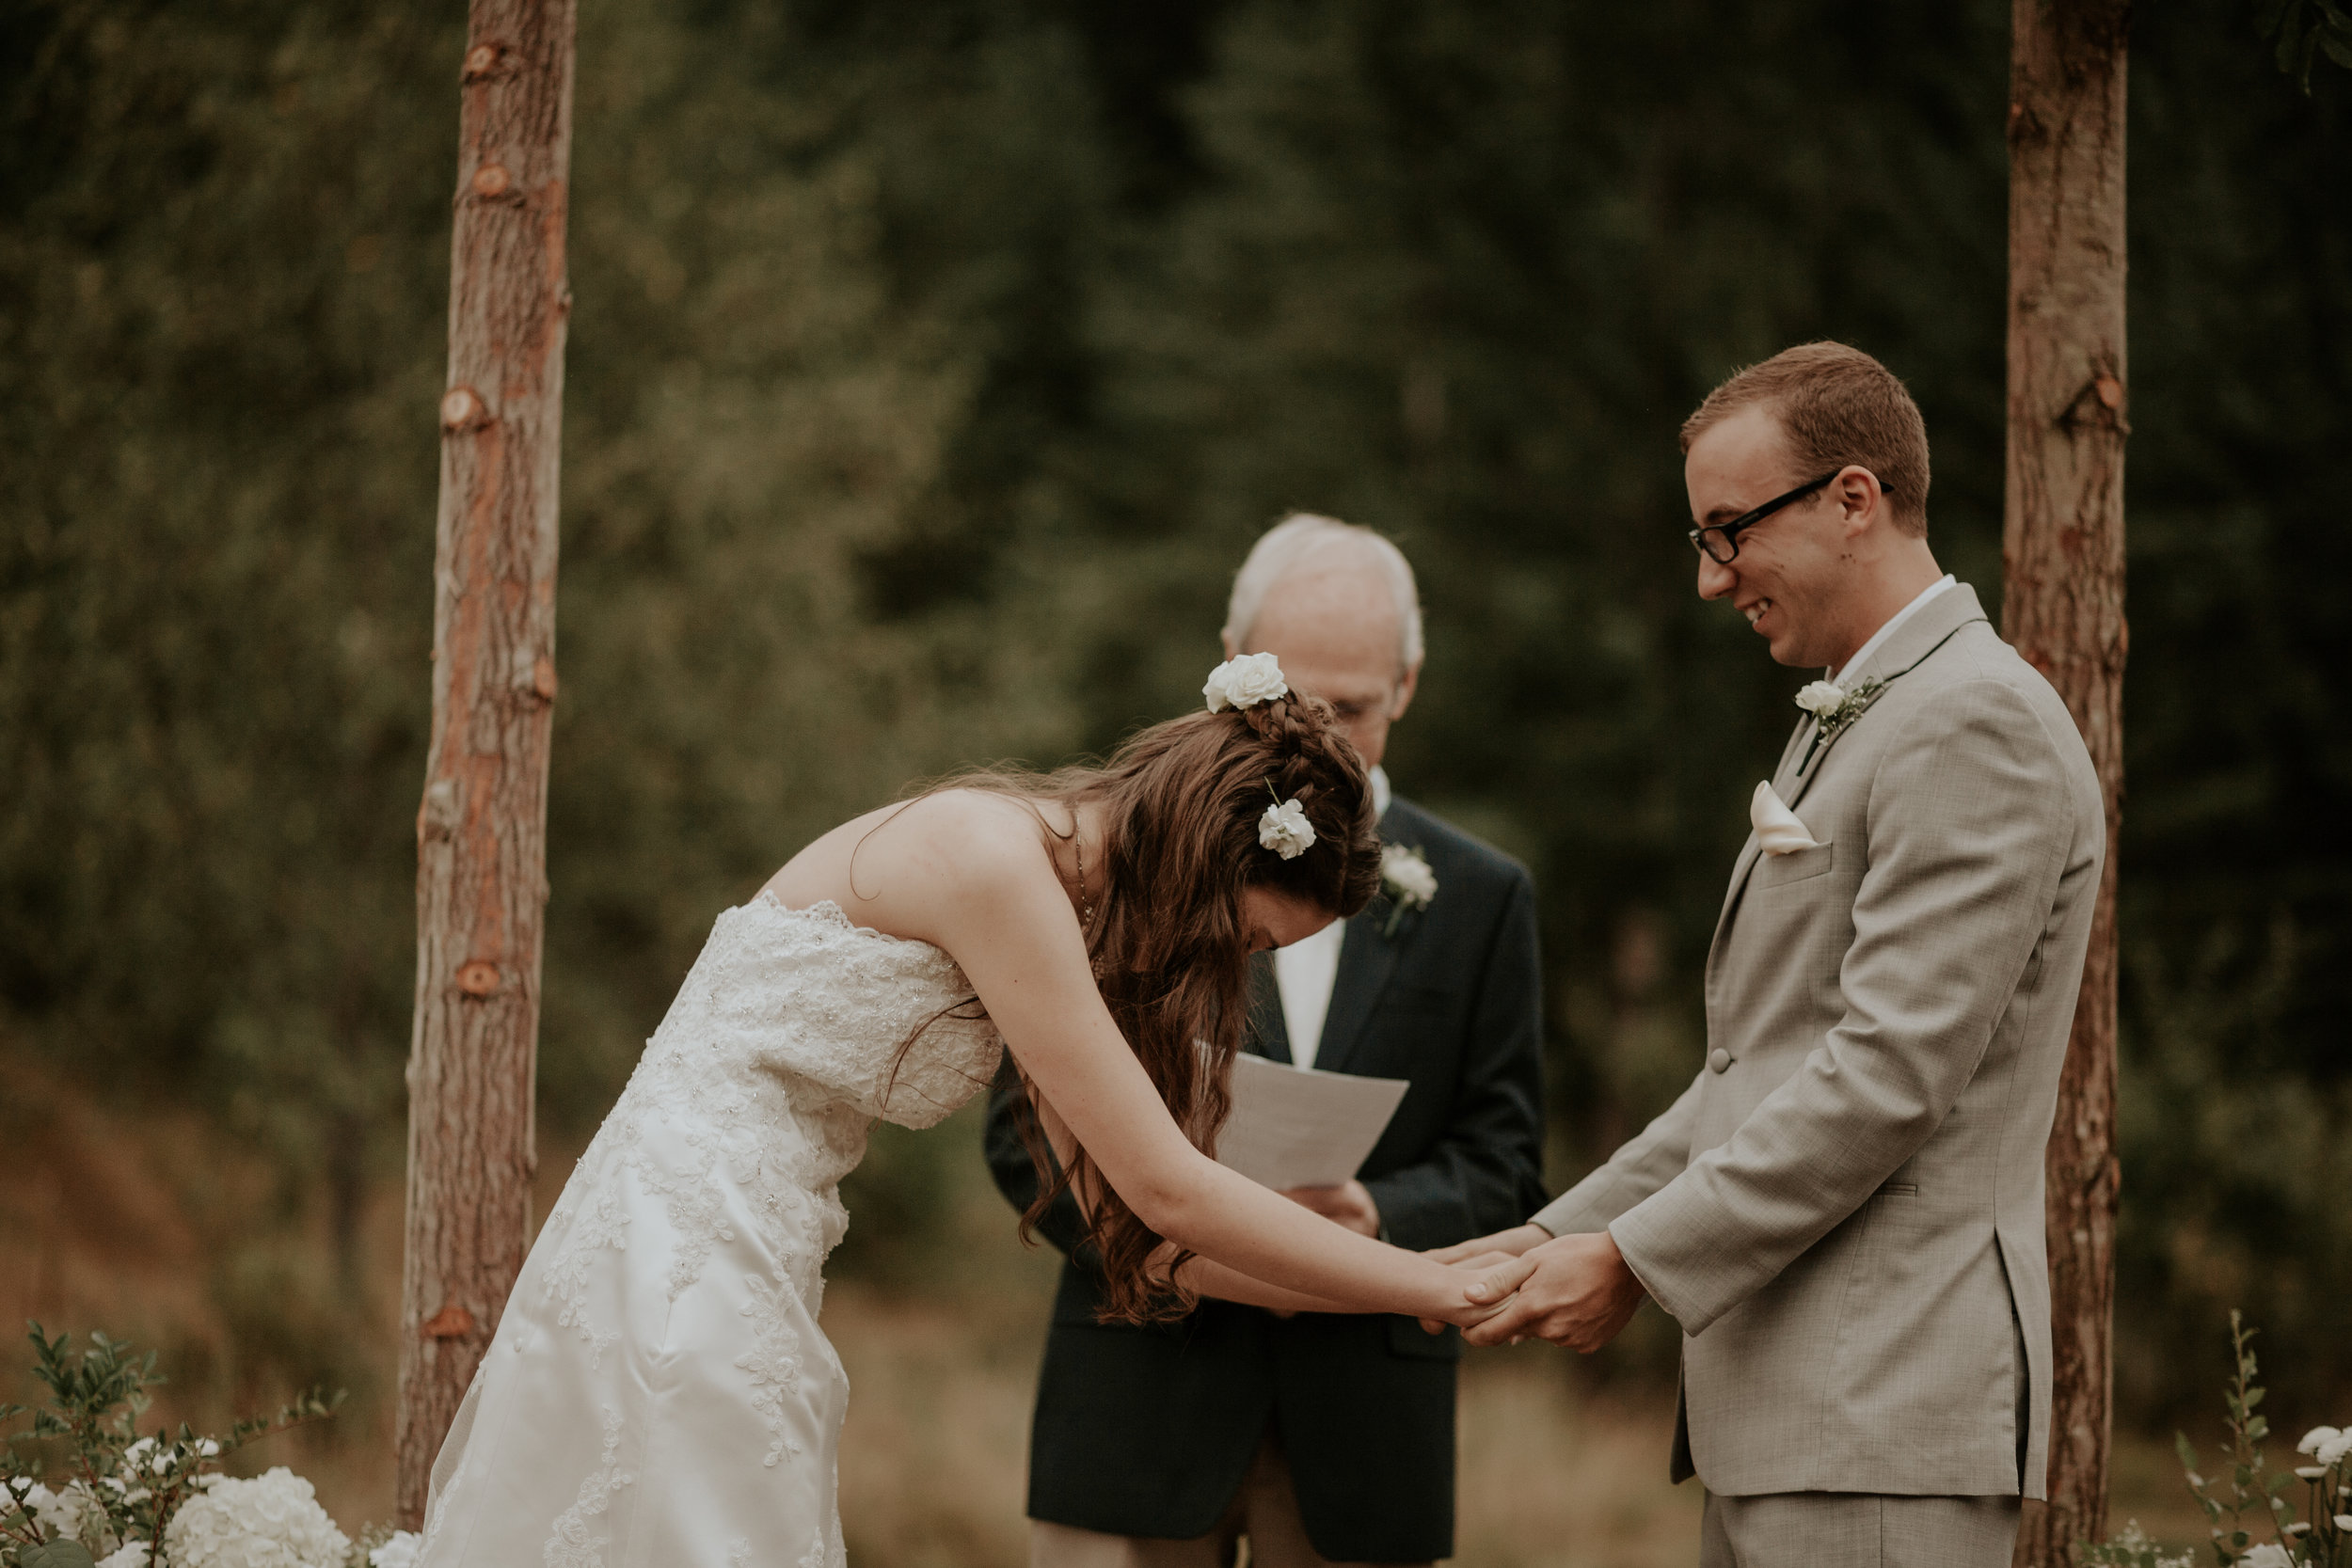 Port-Angeles-elopement-wedding-pnw-olympic-peninsula-photographer-portrait-kayladawnphoto-kayla-dawn-photography-olympic-national-park-73.jpg